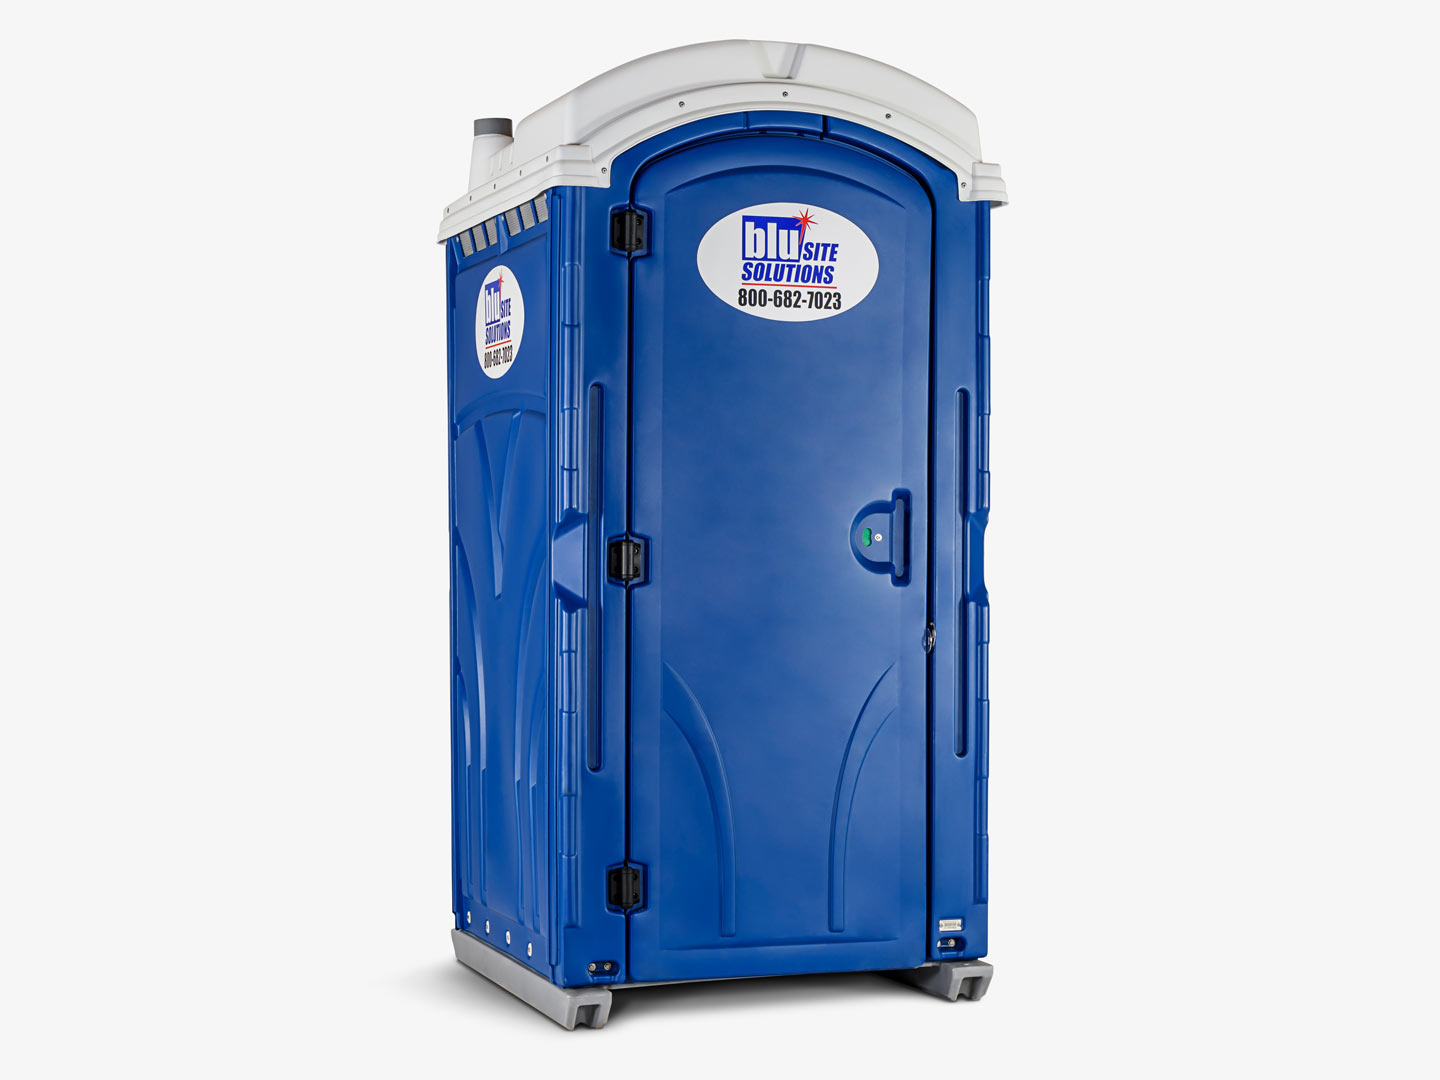 Blu john unit porta potty easy quote and rent blu site for Porta or